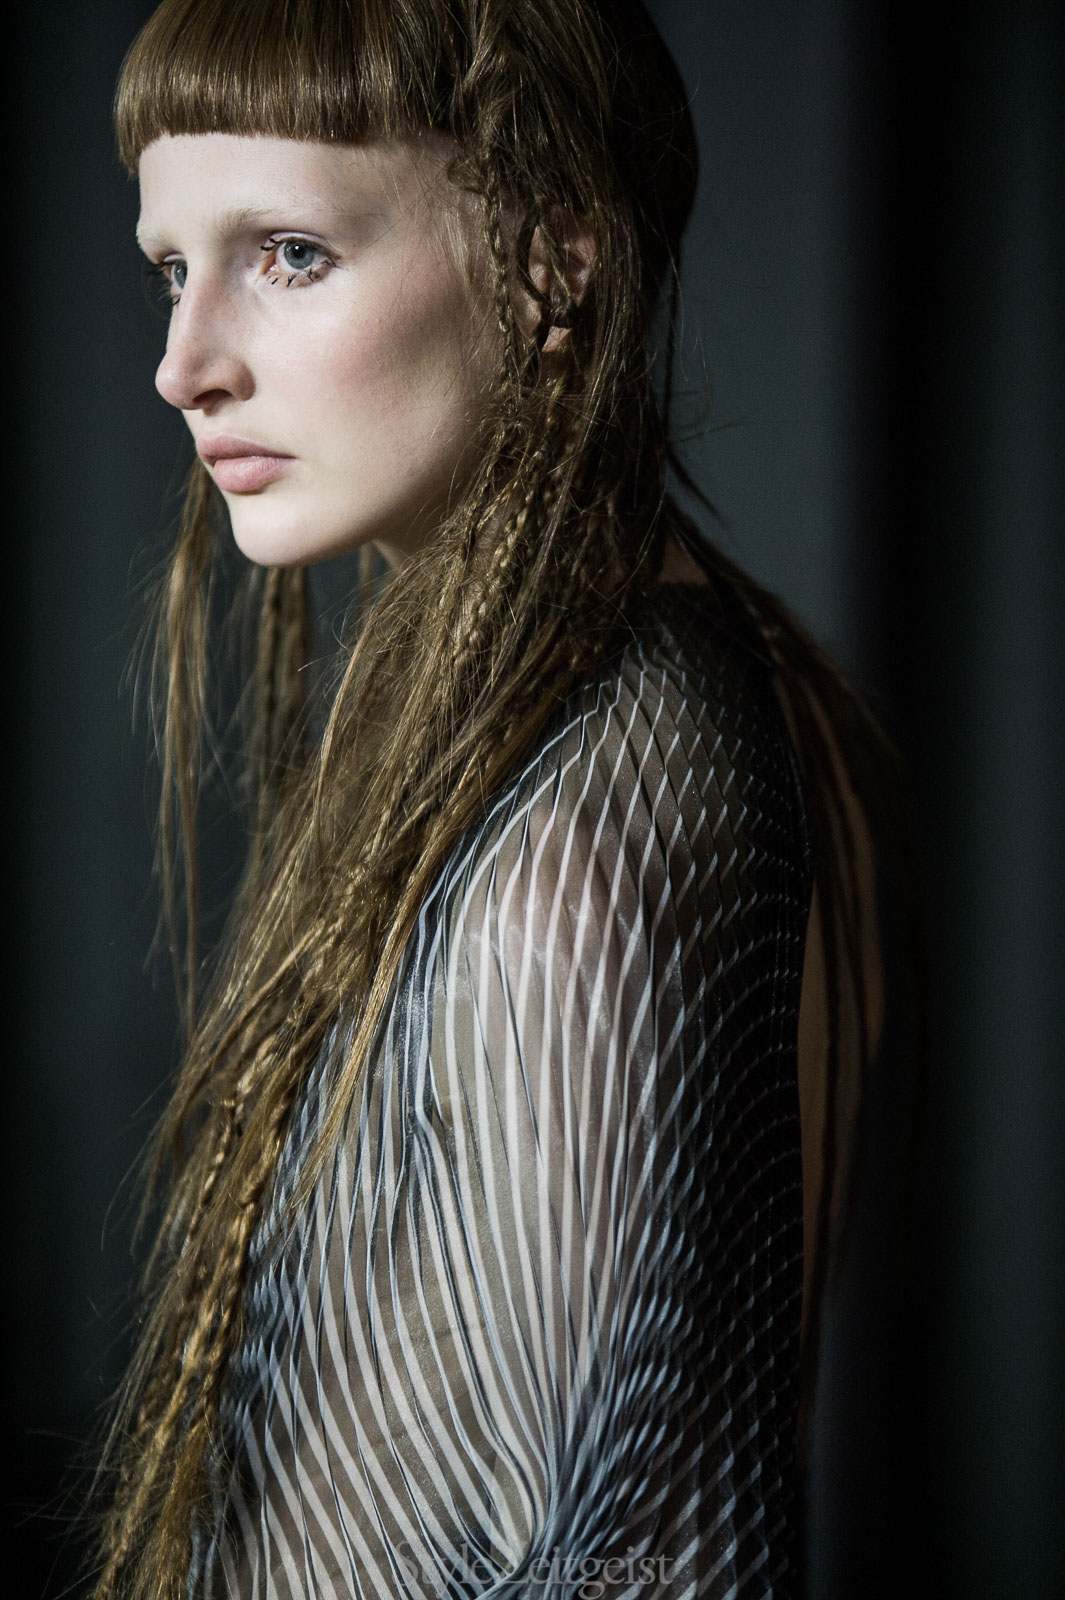 Iris van Herpen F/W17 Couture - Backstage - StyleZeitgeist, PFW, Paris, Iris Van Herpen, FW17, Fashion, Fall Winter, Backstage, 2017